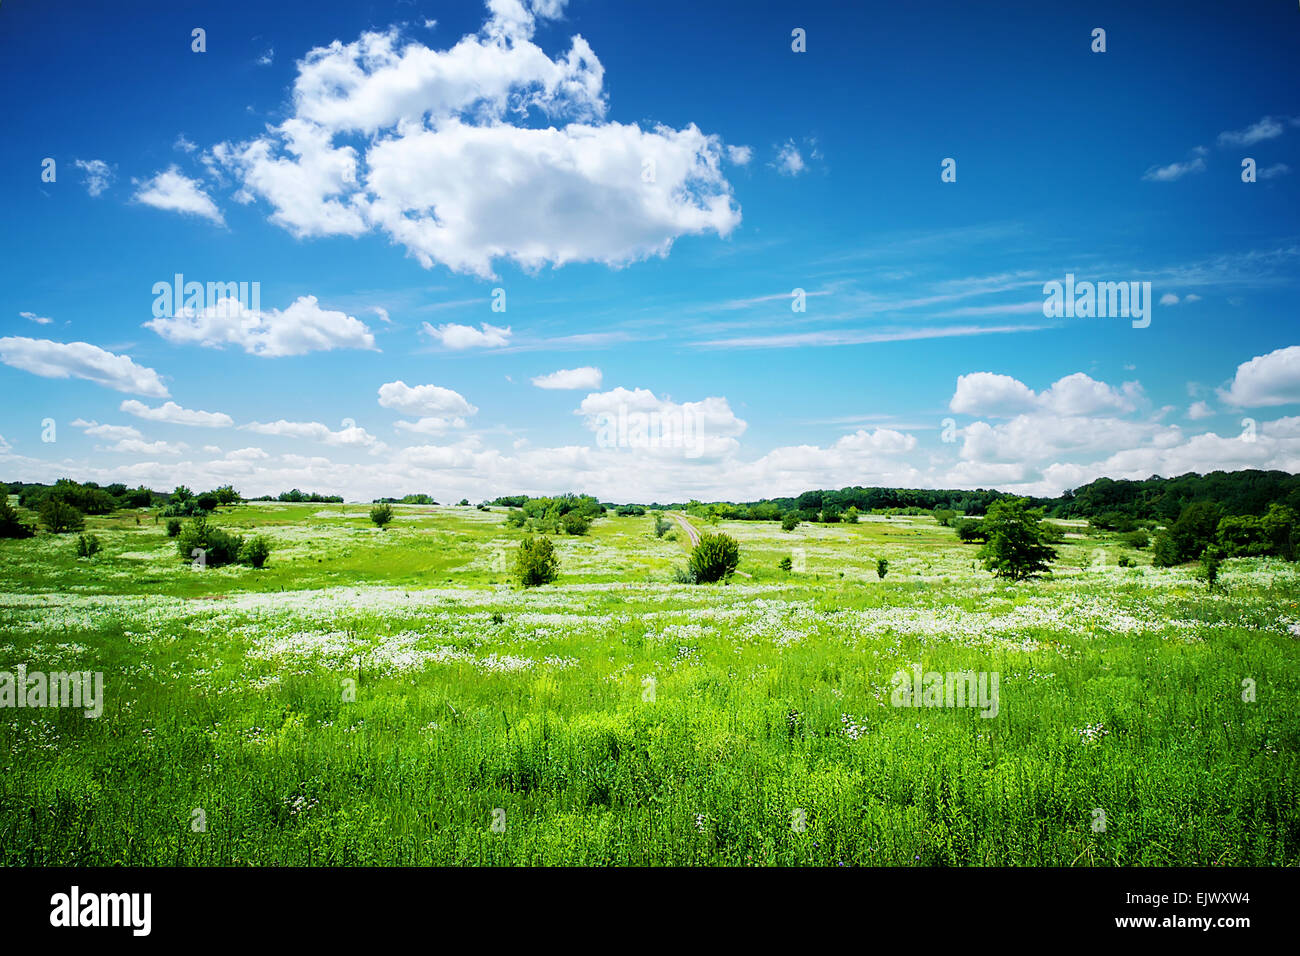 Green field with white flowers under a cloudy sky - Stock Image